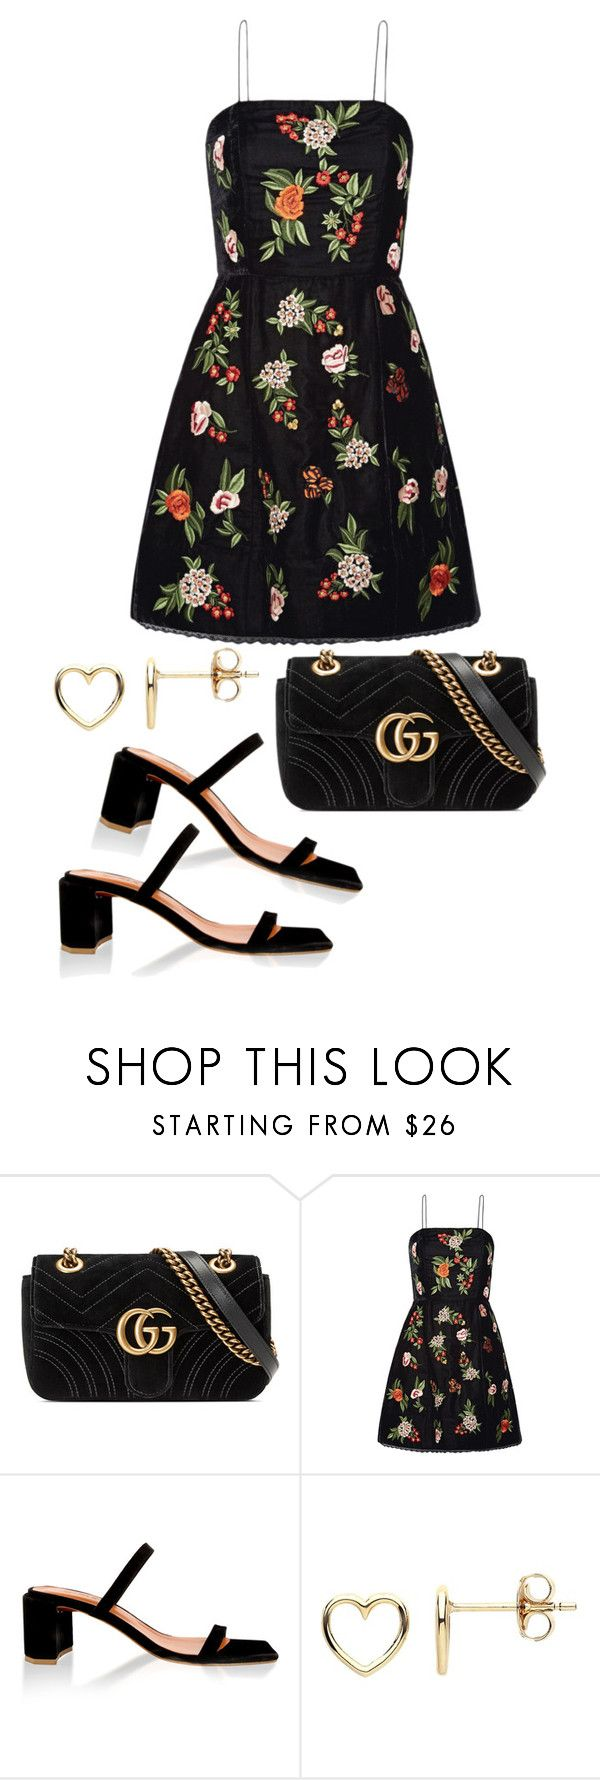 """Untitled #23123"" by florencia95 ❤ liked on Polyvore featuring Gucci, Alice + Olivia, by FAR and Estella Bartlett"